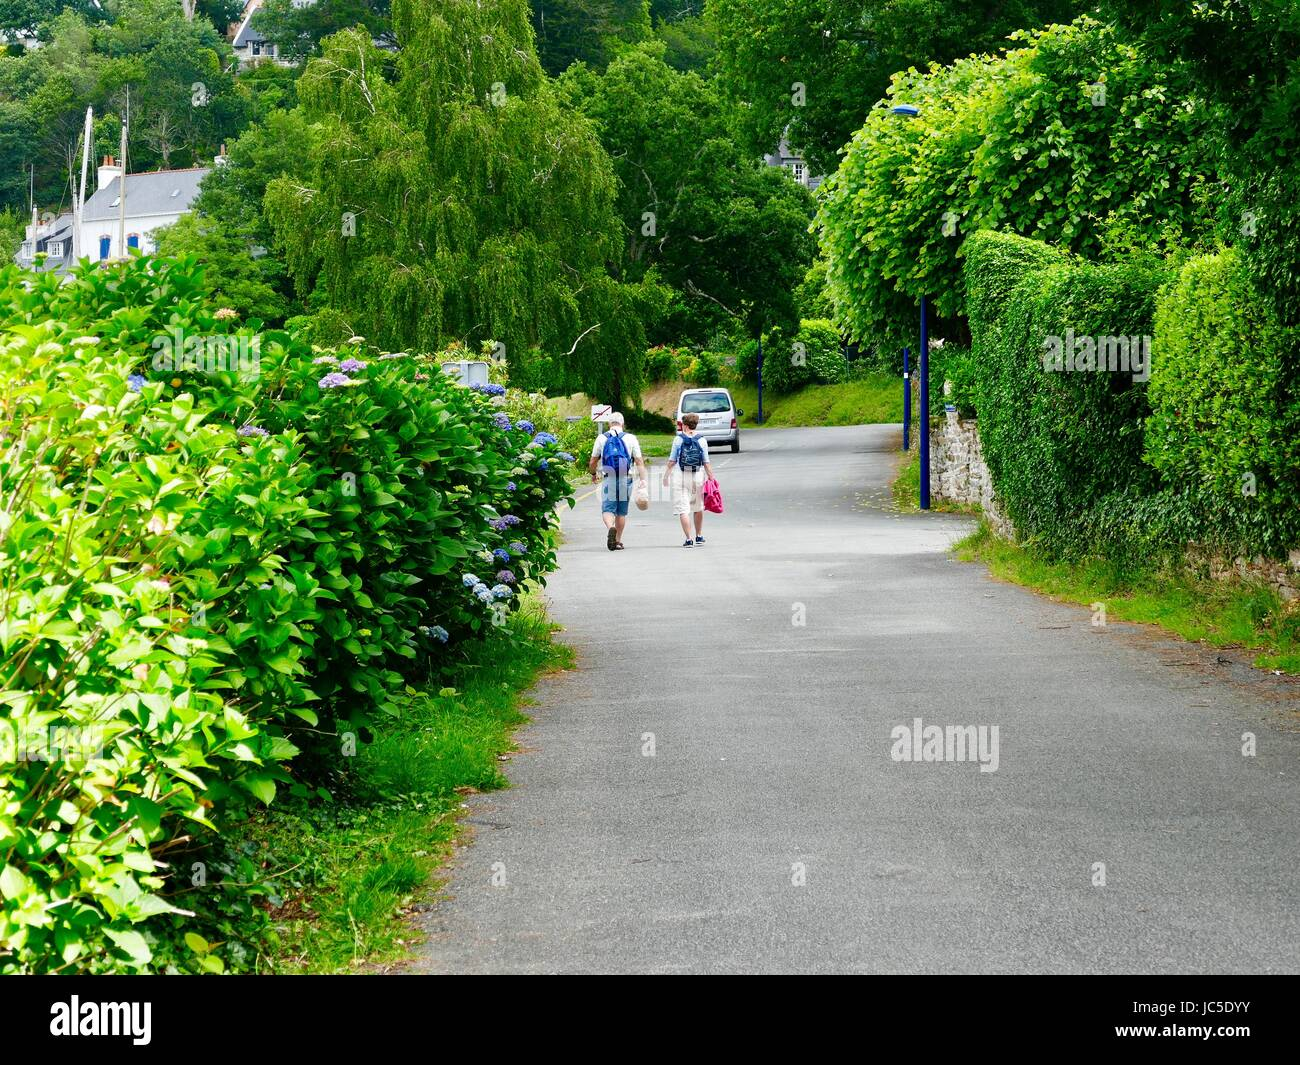 Fit-looking, middle-aged man and woman with backpacks walking down lane next to the river with blooming hydrangeas - Stock Image